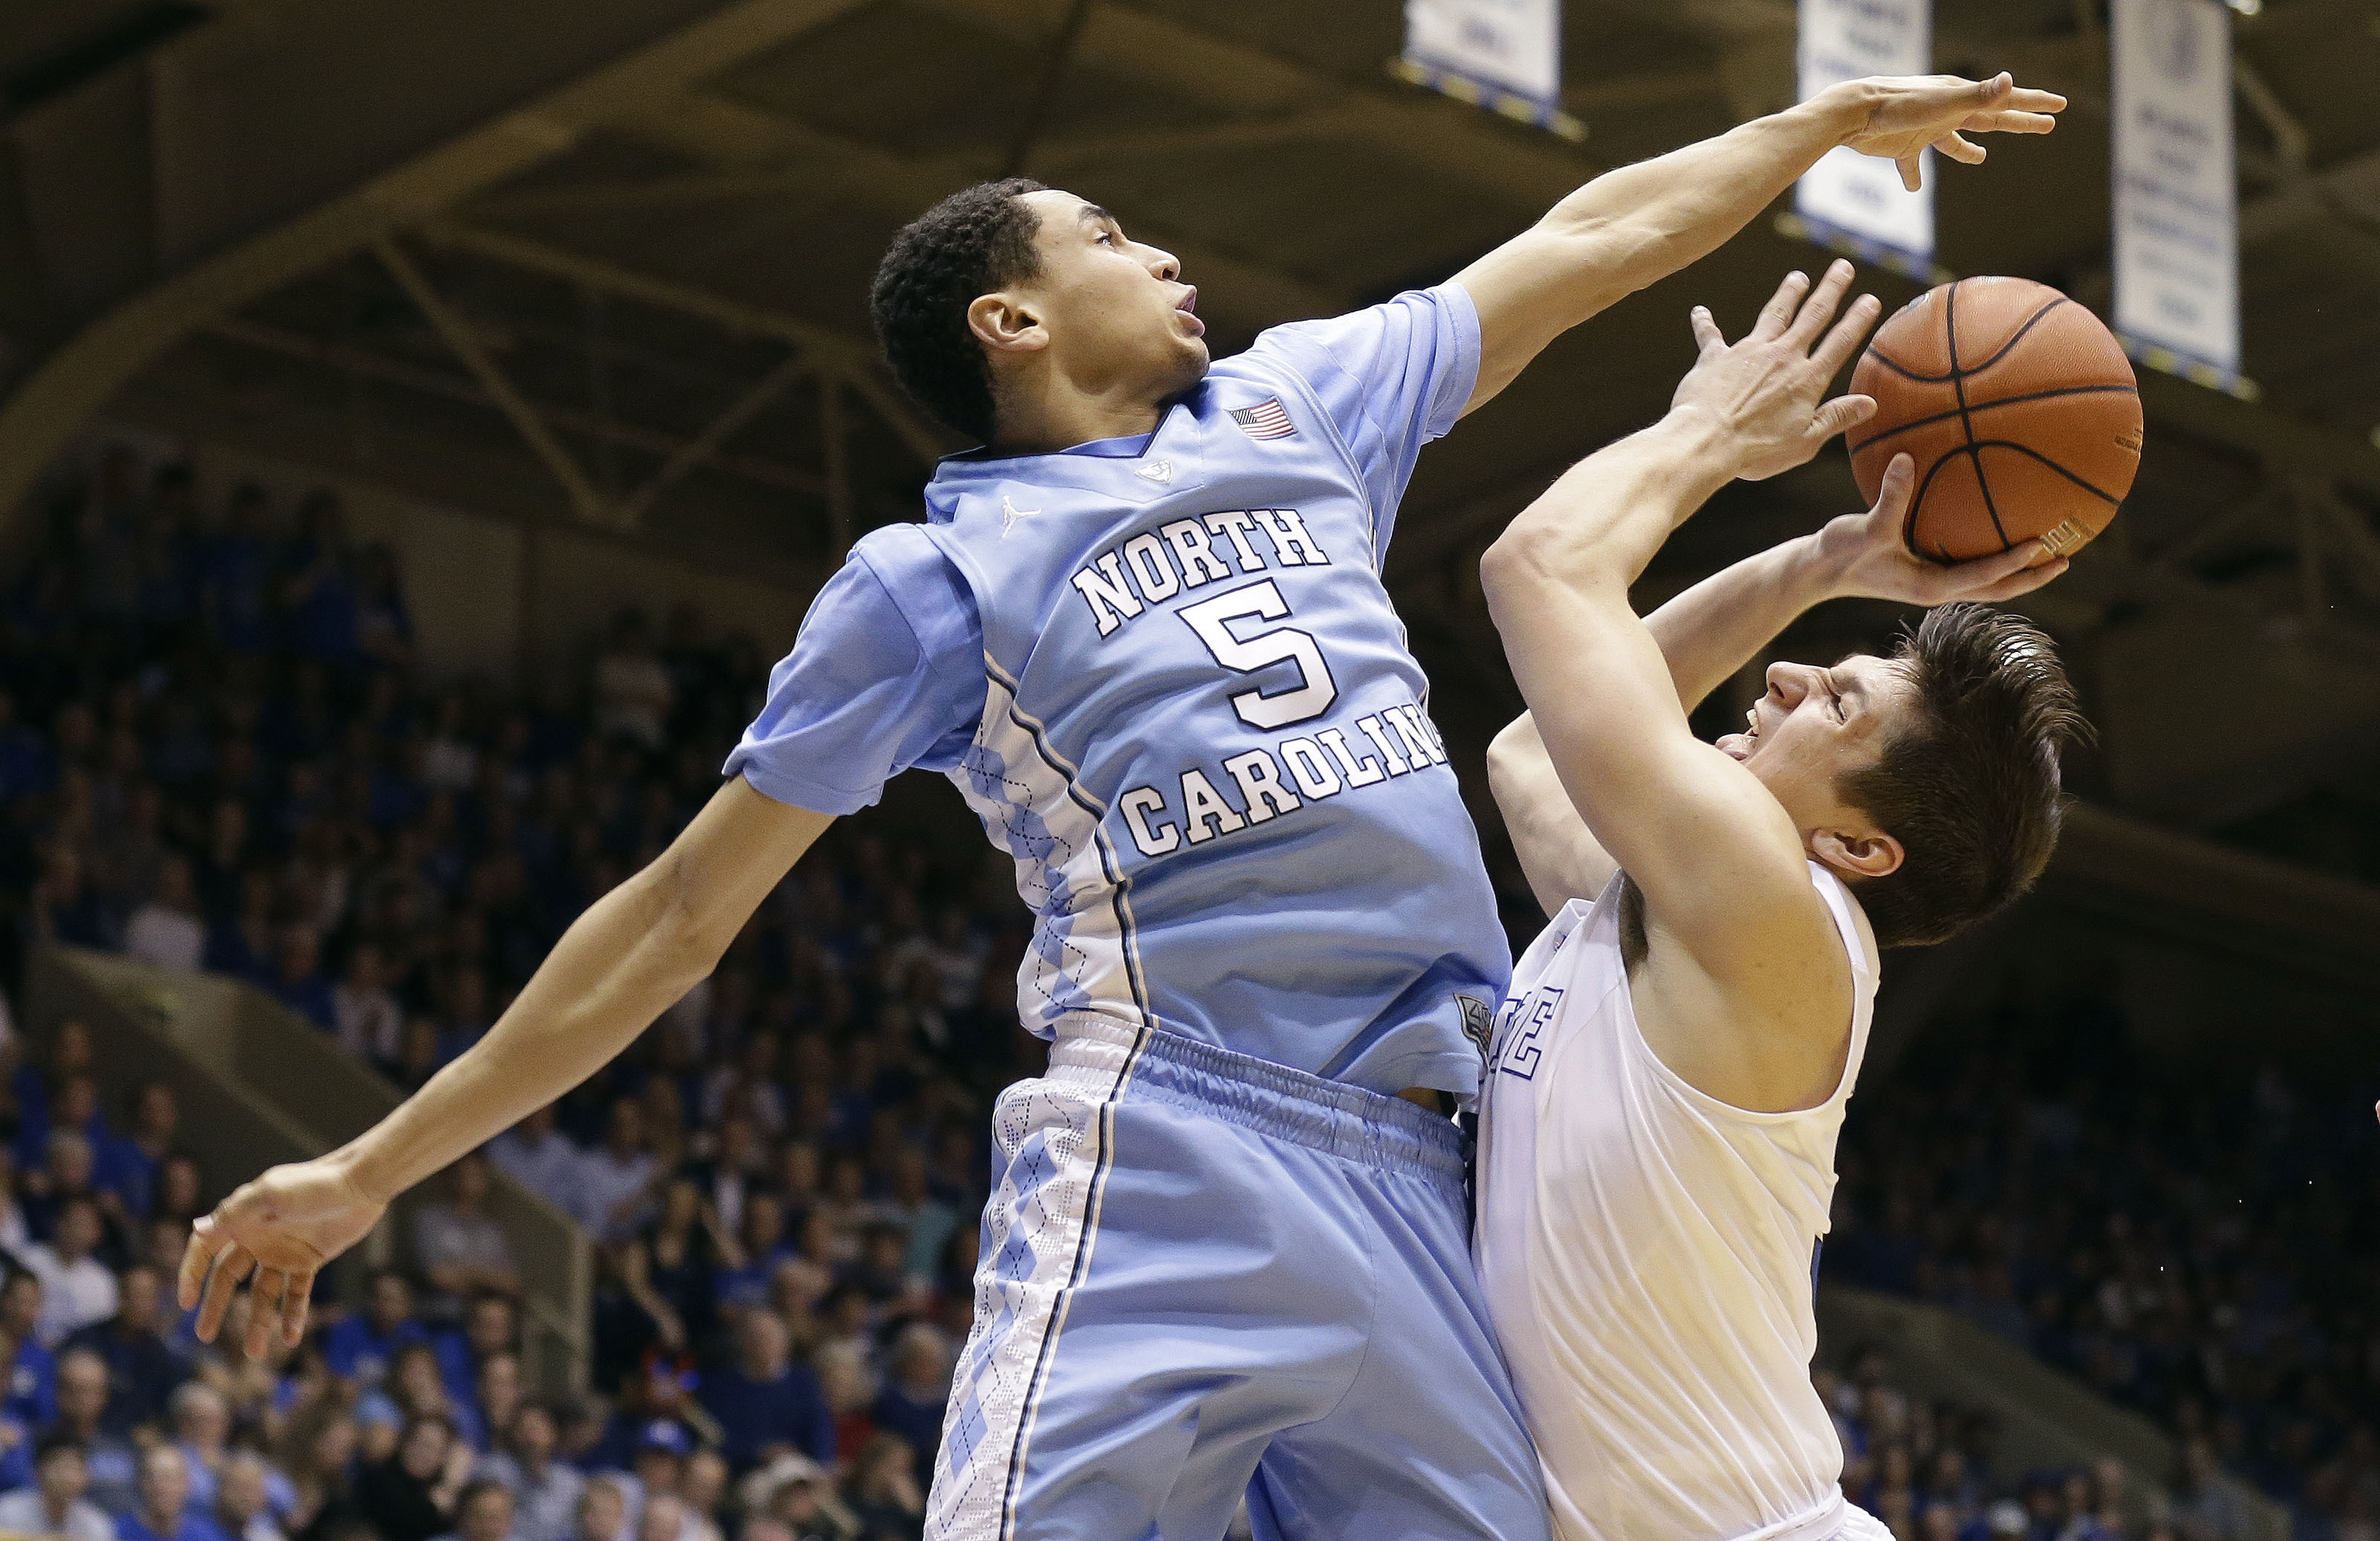 North Carolina's Marcus Paige (5) blocks Duke's Grayson Allen during the second half of an NCAA college basketball game in Durham, N.C., Saturday, March 5, 2016. North Carolina won 76-72. (AP Photo/Gerry Broome)